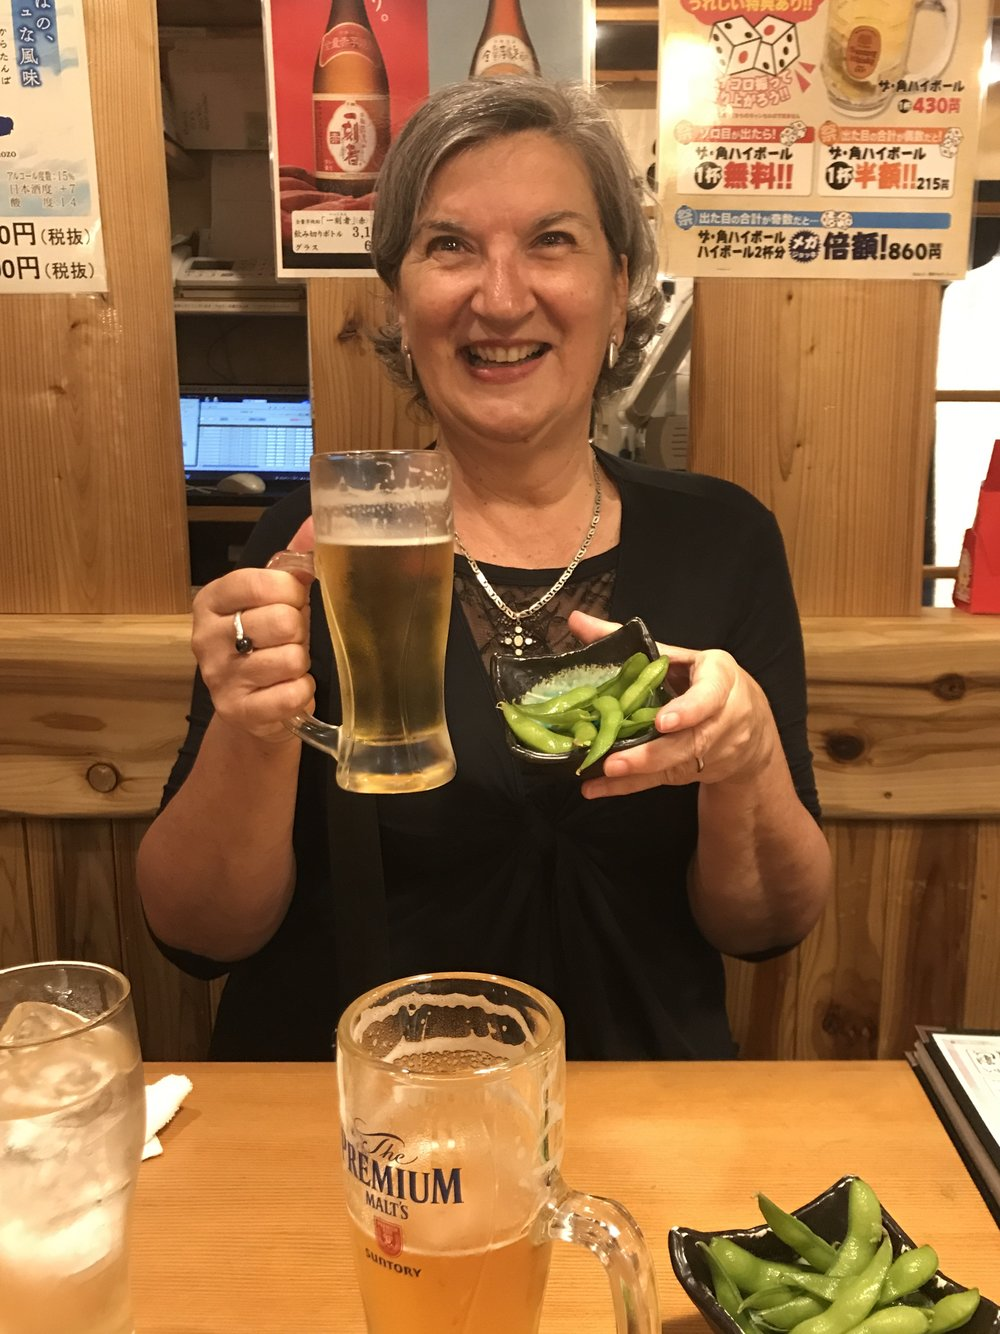 Beans and beer in Japan